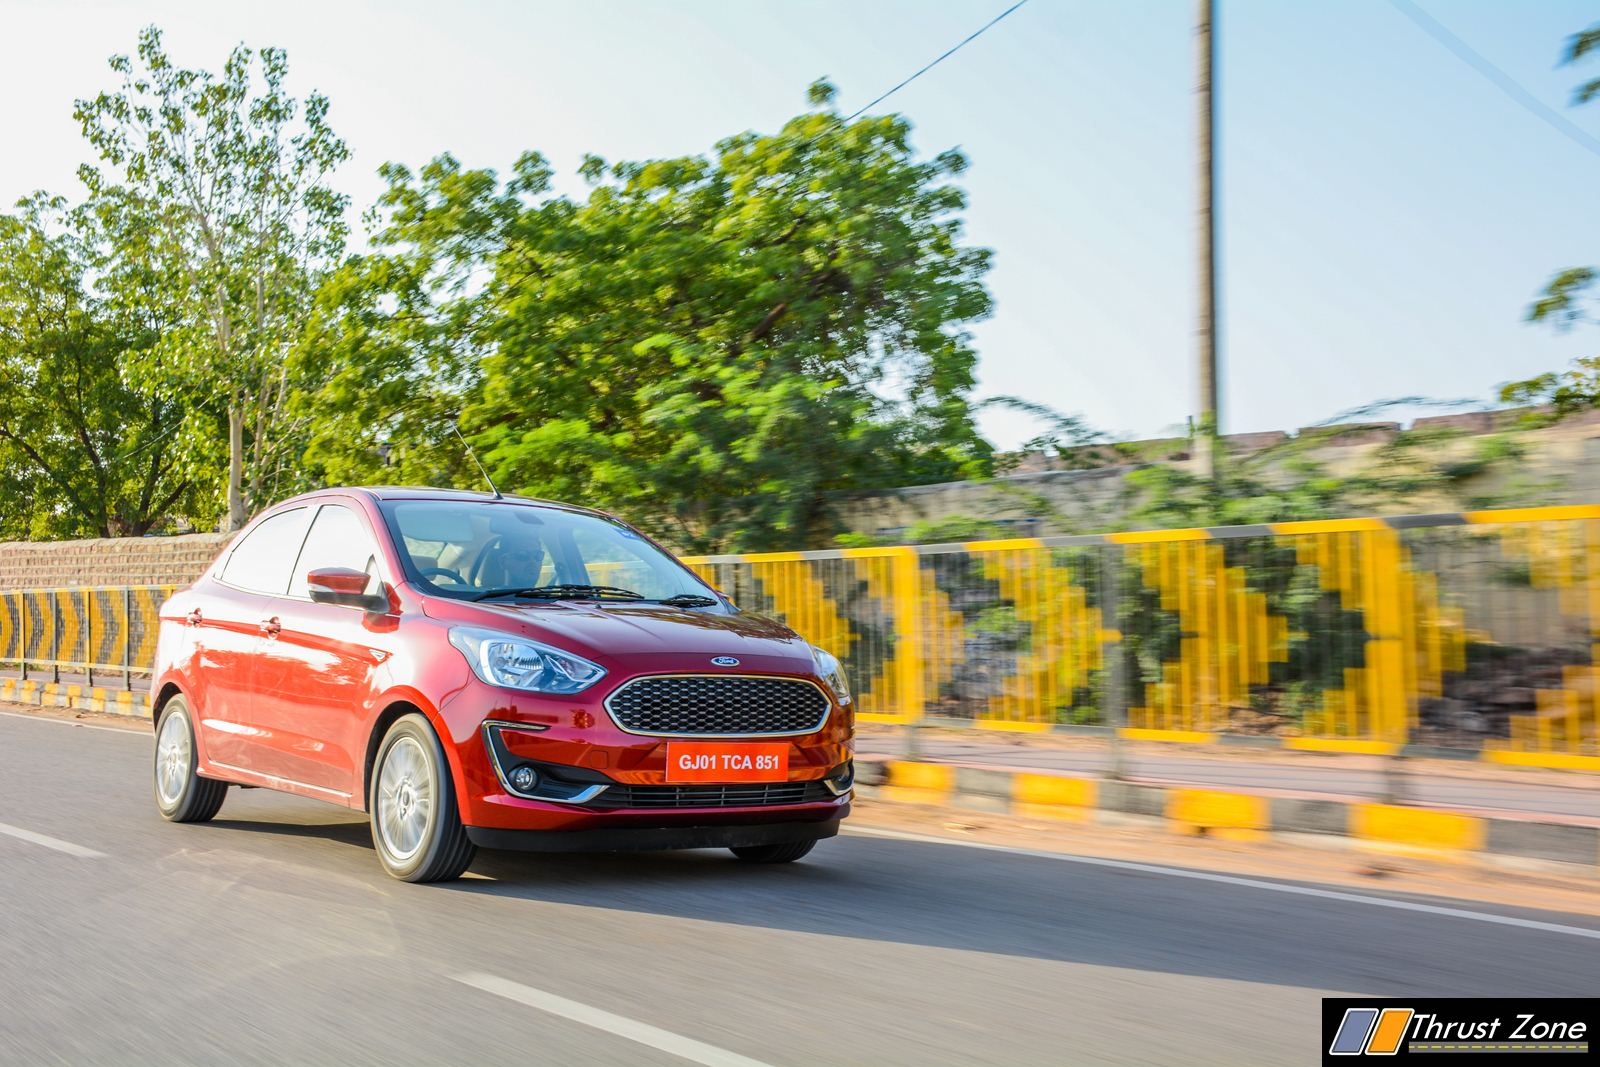 2018-Ford-Aspire-facelift-review-15